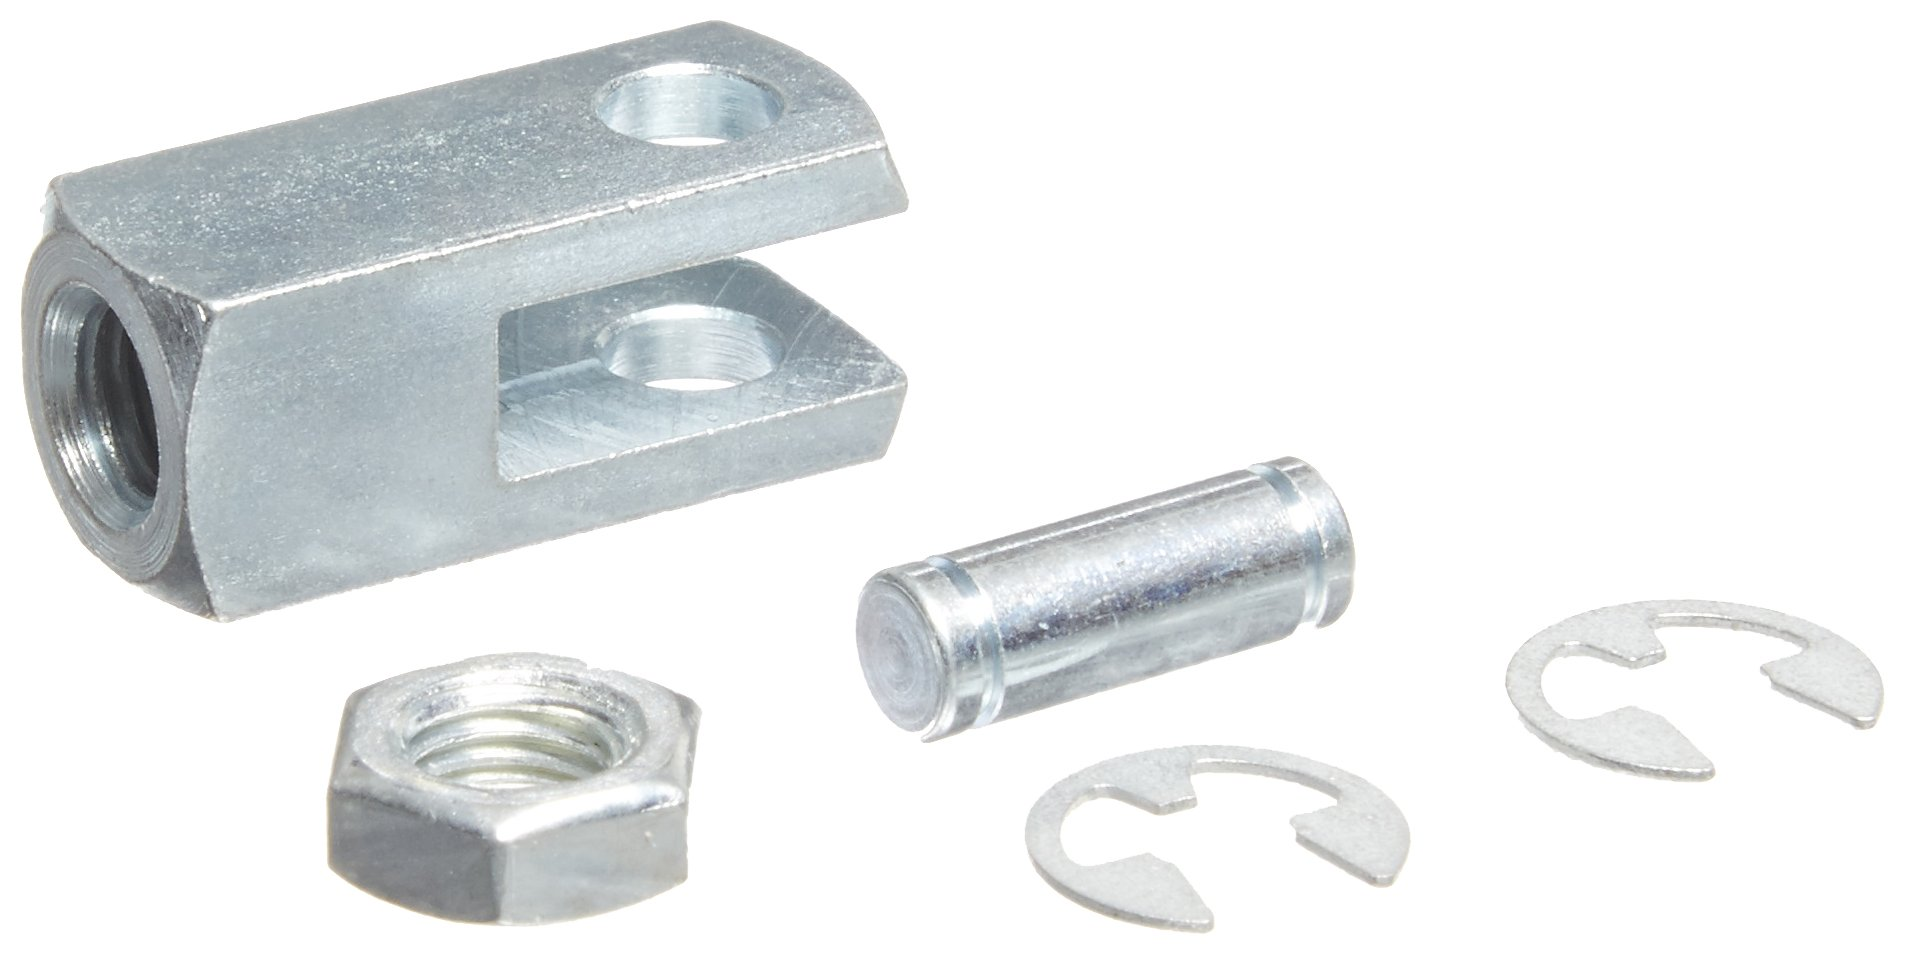 Parker L071300300 Piston Rod Clevis, for Nose or Universal Mount, for use with 1 1/16'' Bore